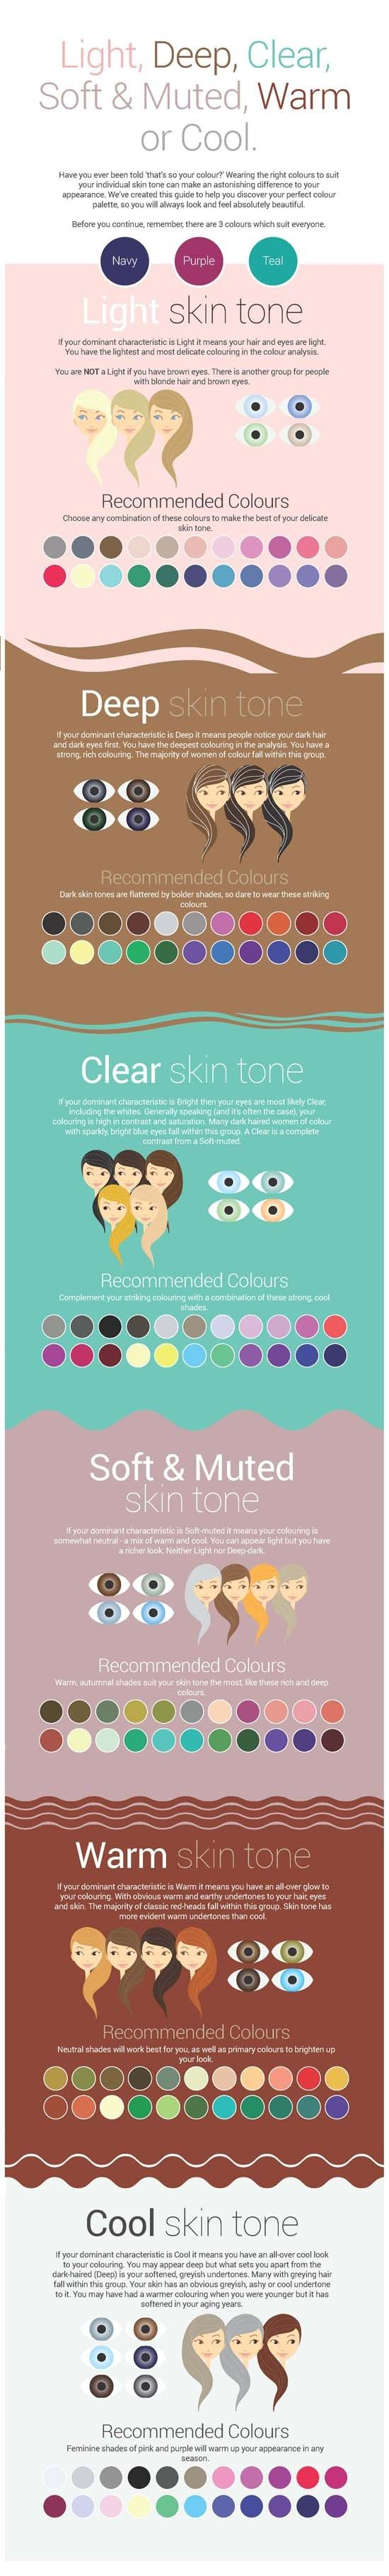 What Colors to Wear to Match Your Skin Tone.